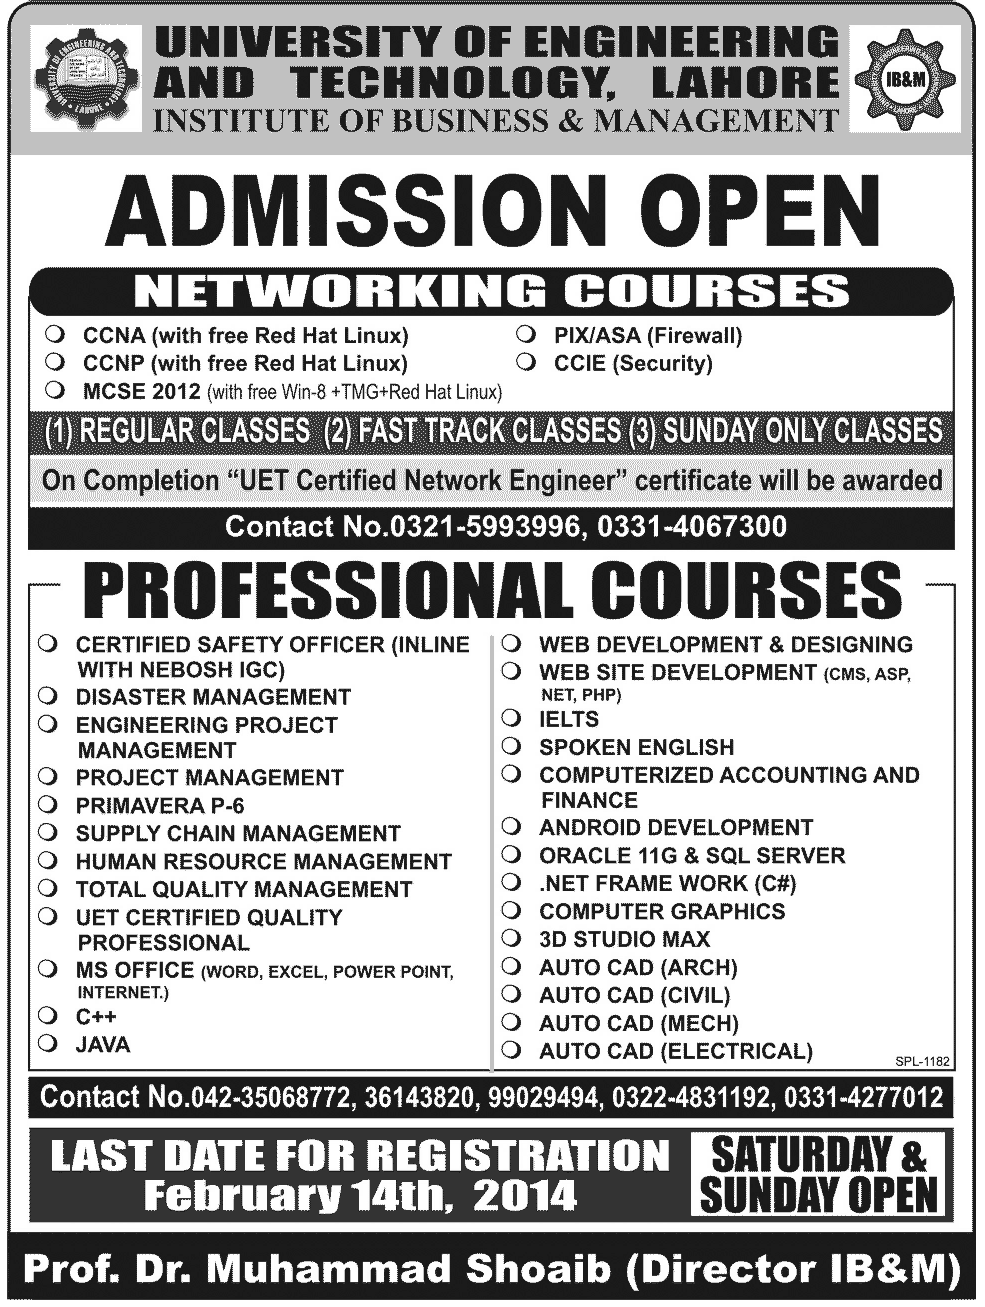 UET Lahore 2014 Admission Offers Network Courses 2014